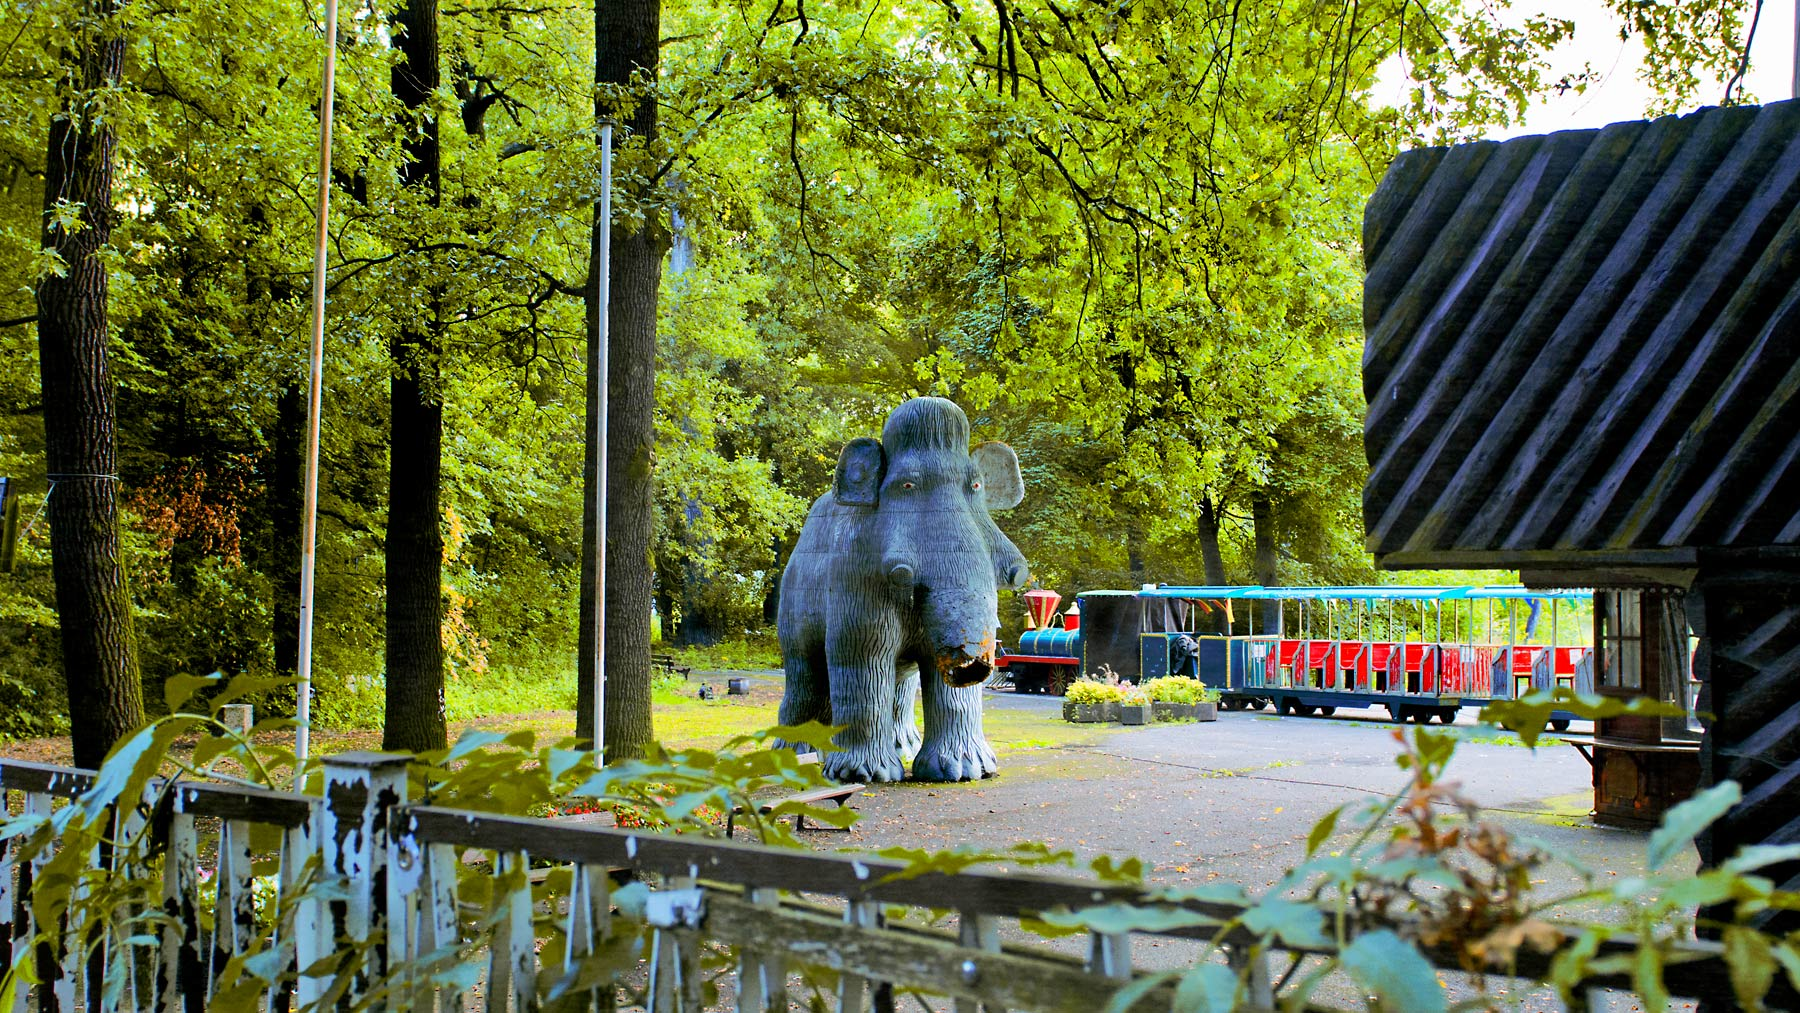 Good Boy Wolf Photographer, filmic landscape, Berlin elephant surrounded by trees